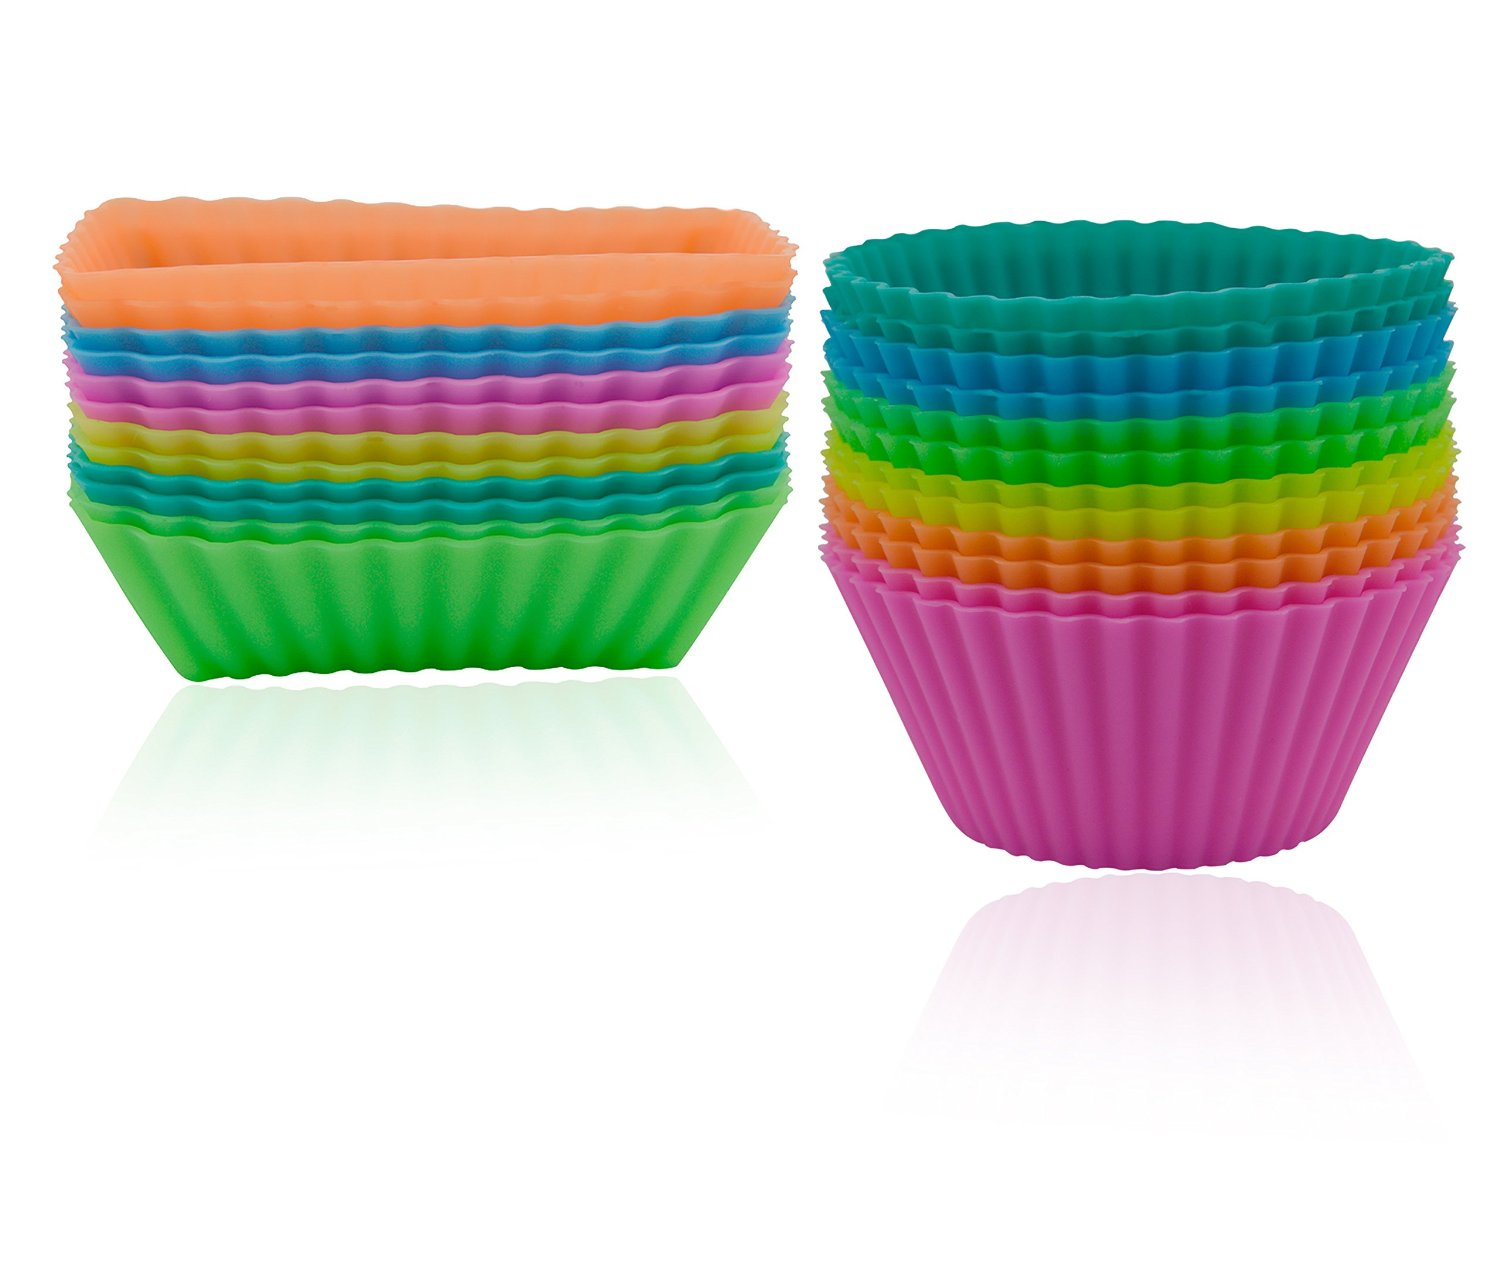 Freshware 24 Pack Silicone Baking Cups Only $9.99!